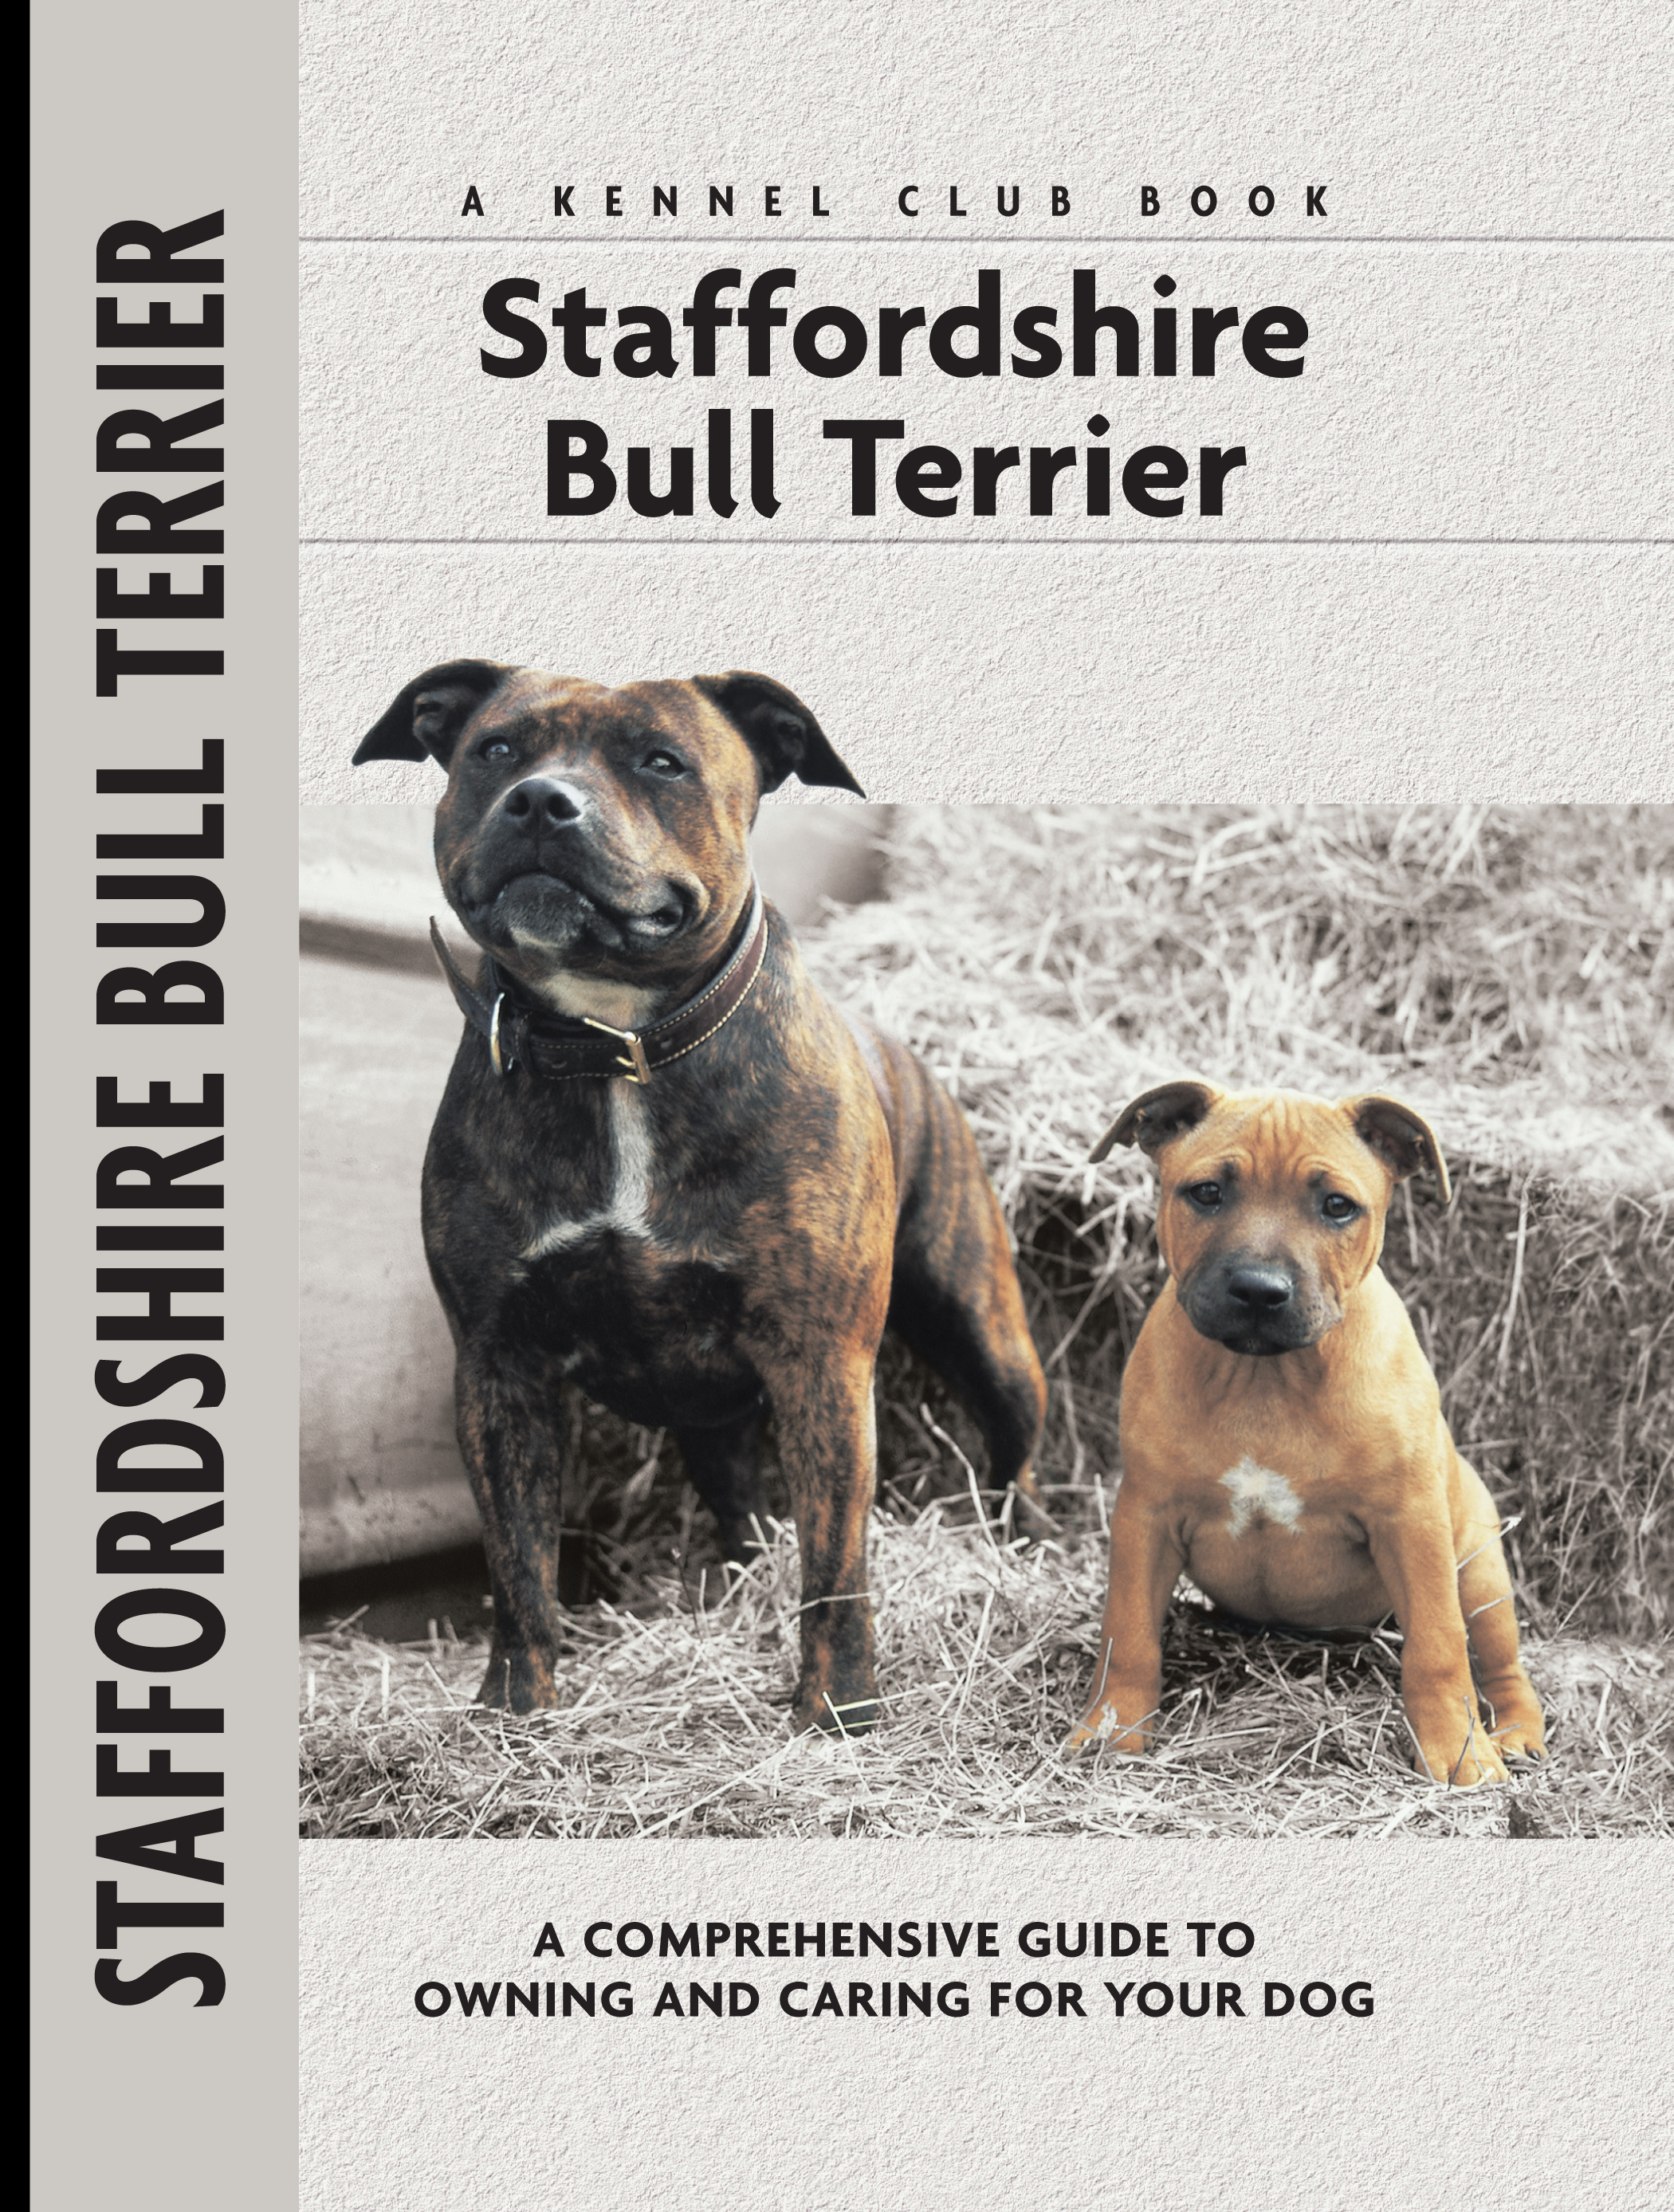 Staffordshire Bull Terrier By: Jane Hogg Frome